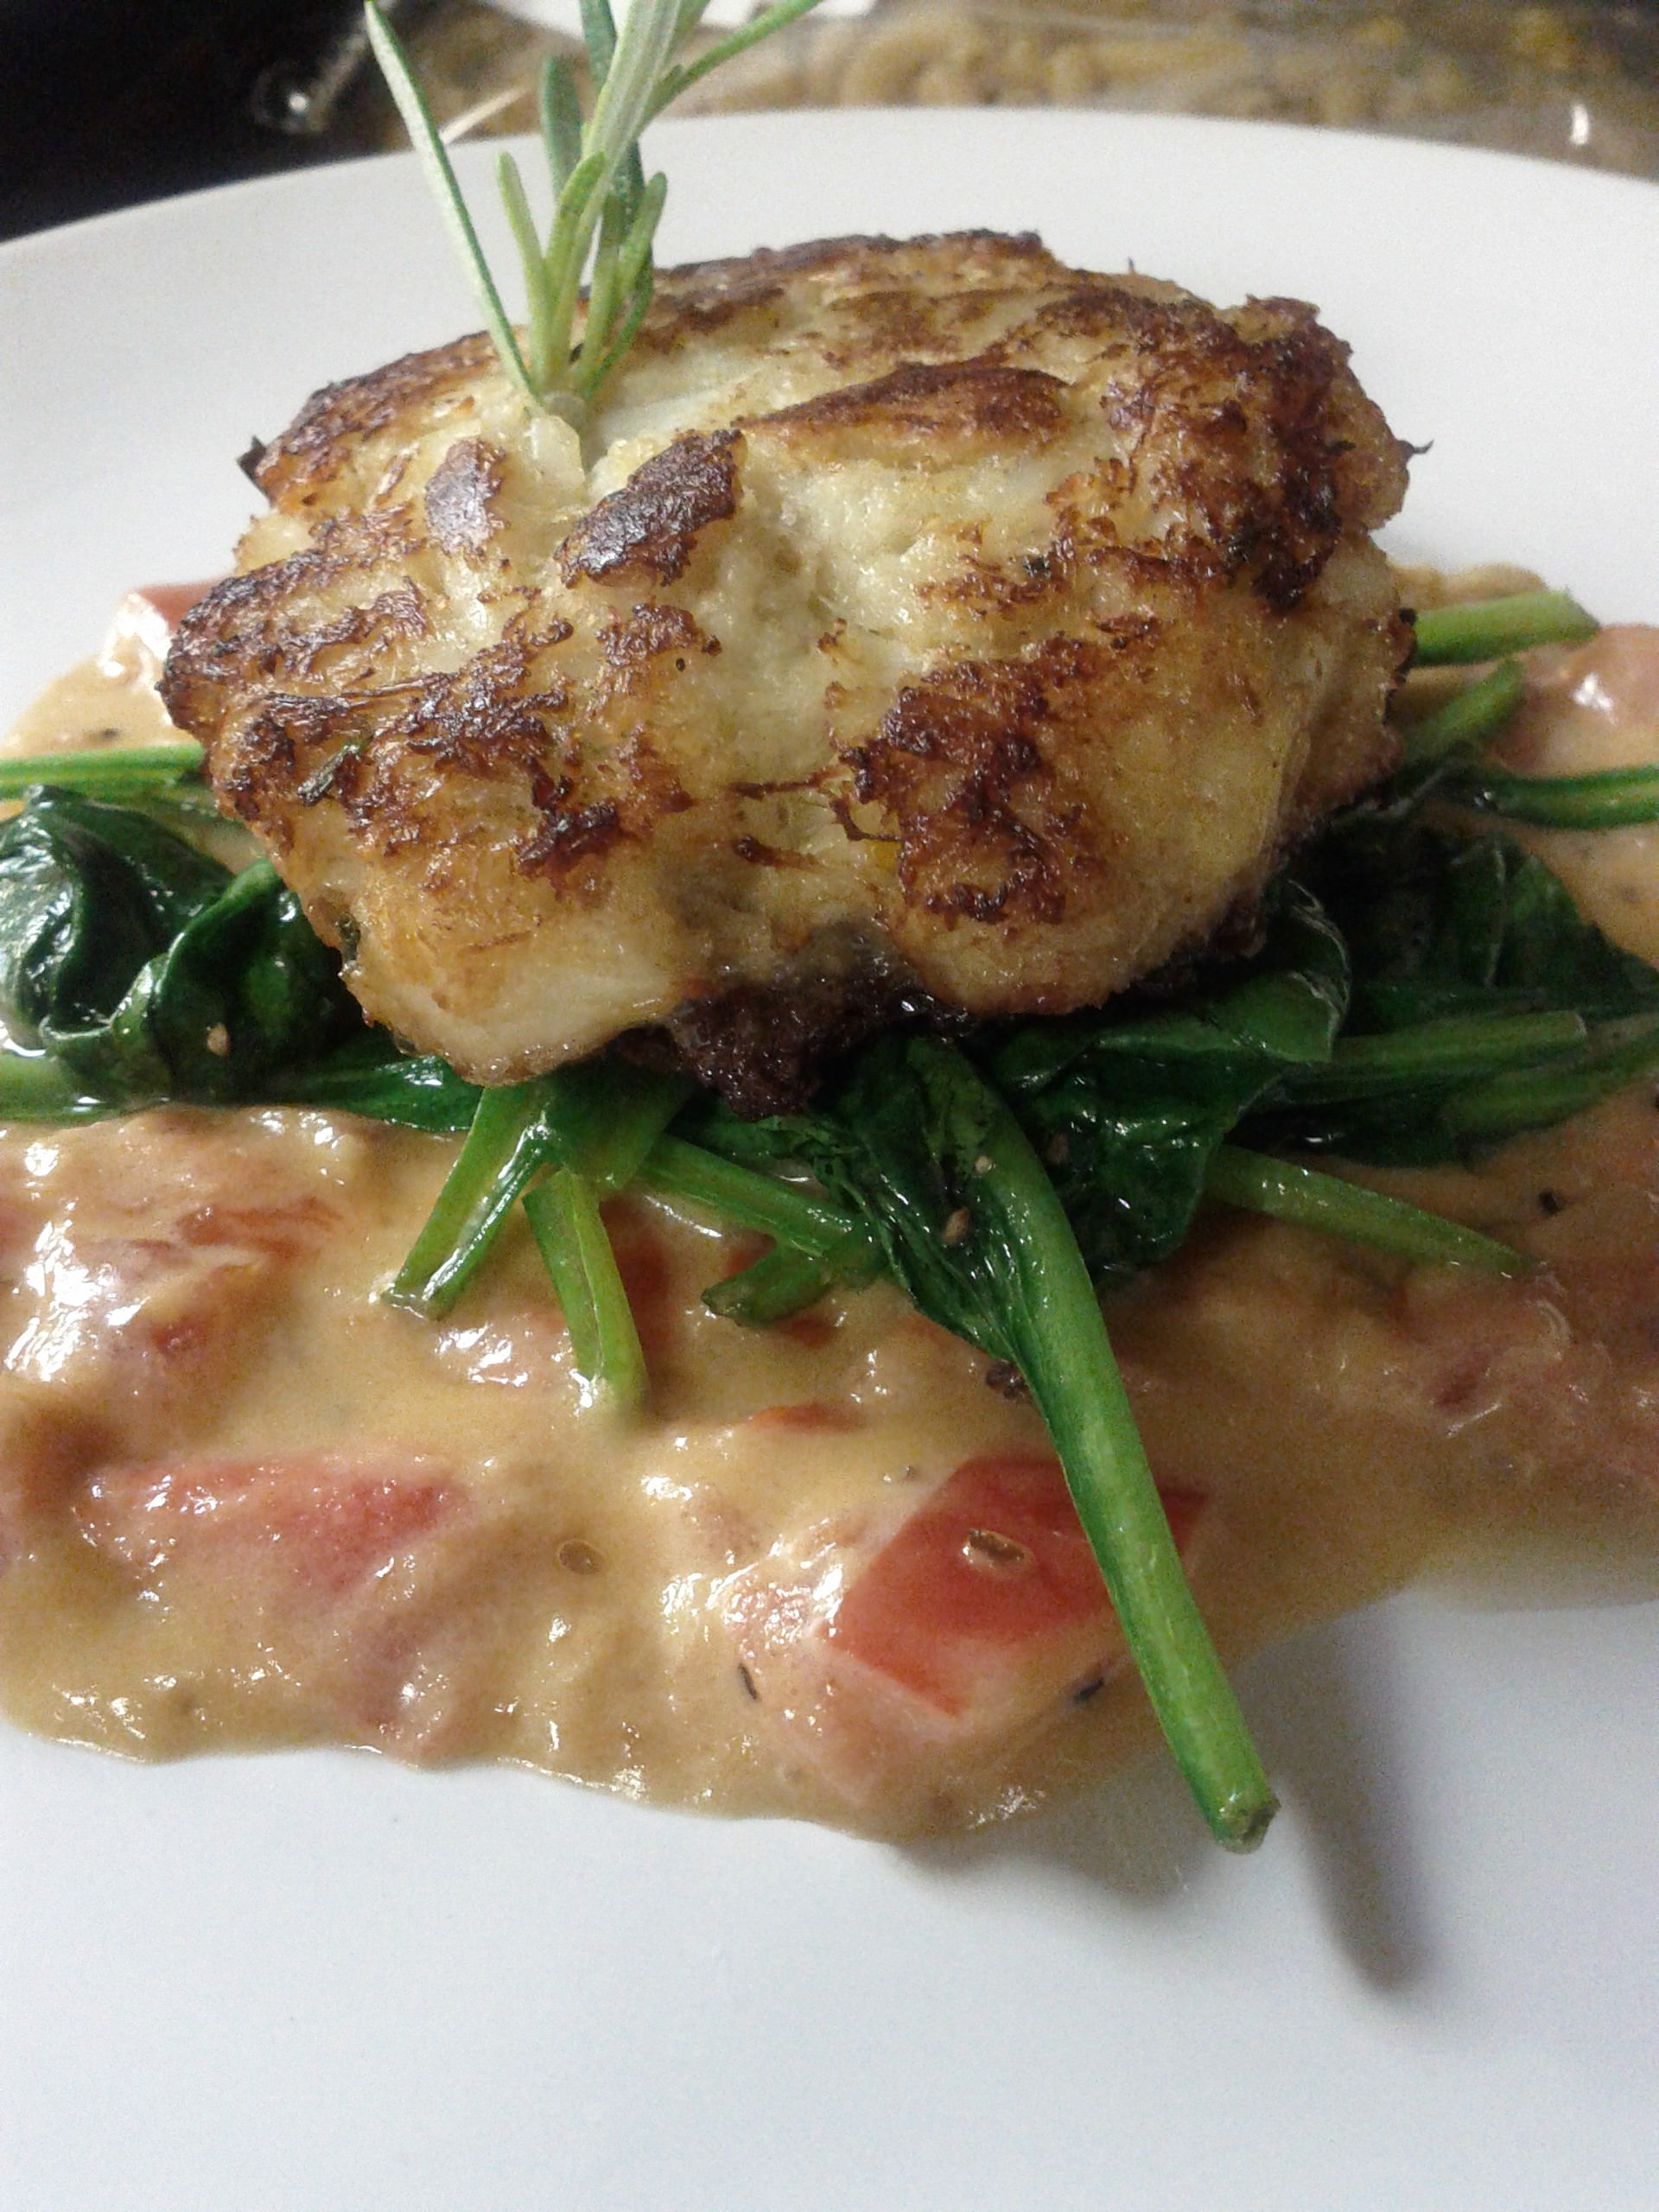 Pan seared crab cake with garlic wilted spinach and tomato / white wine pan sauce